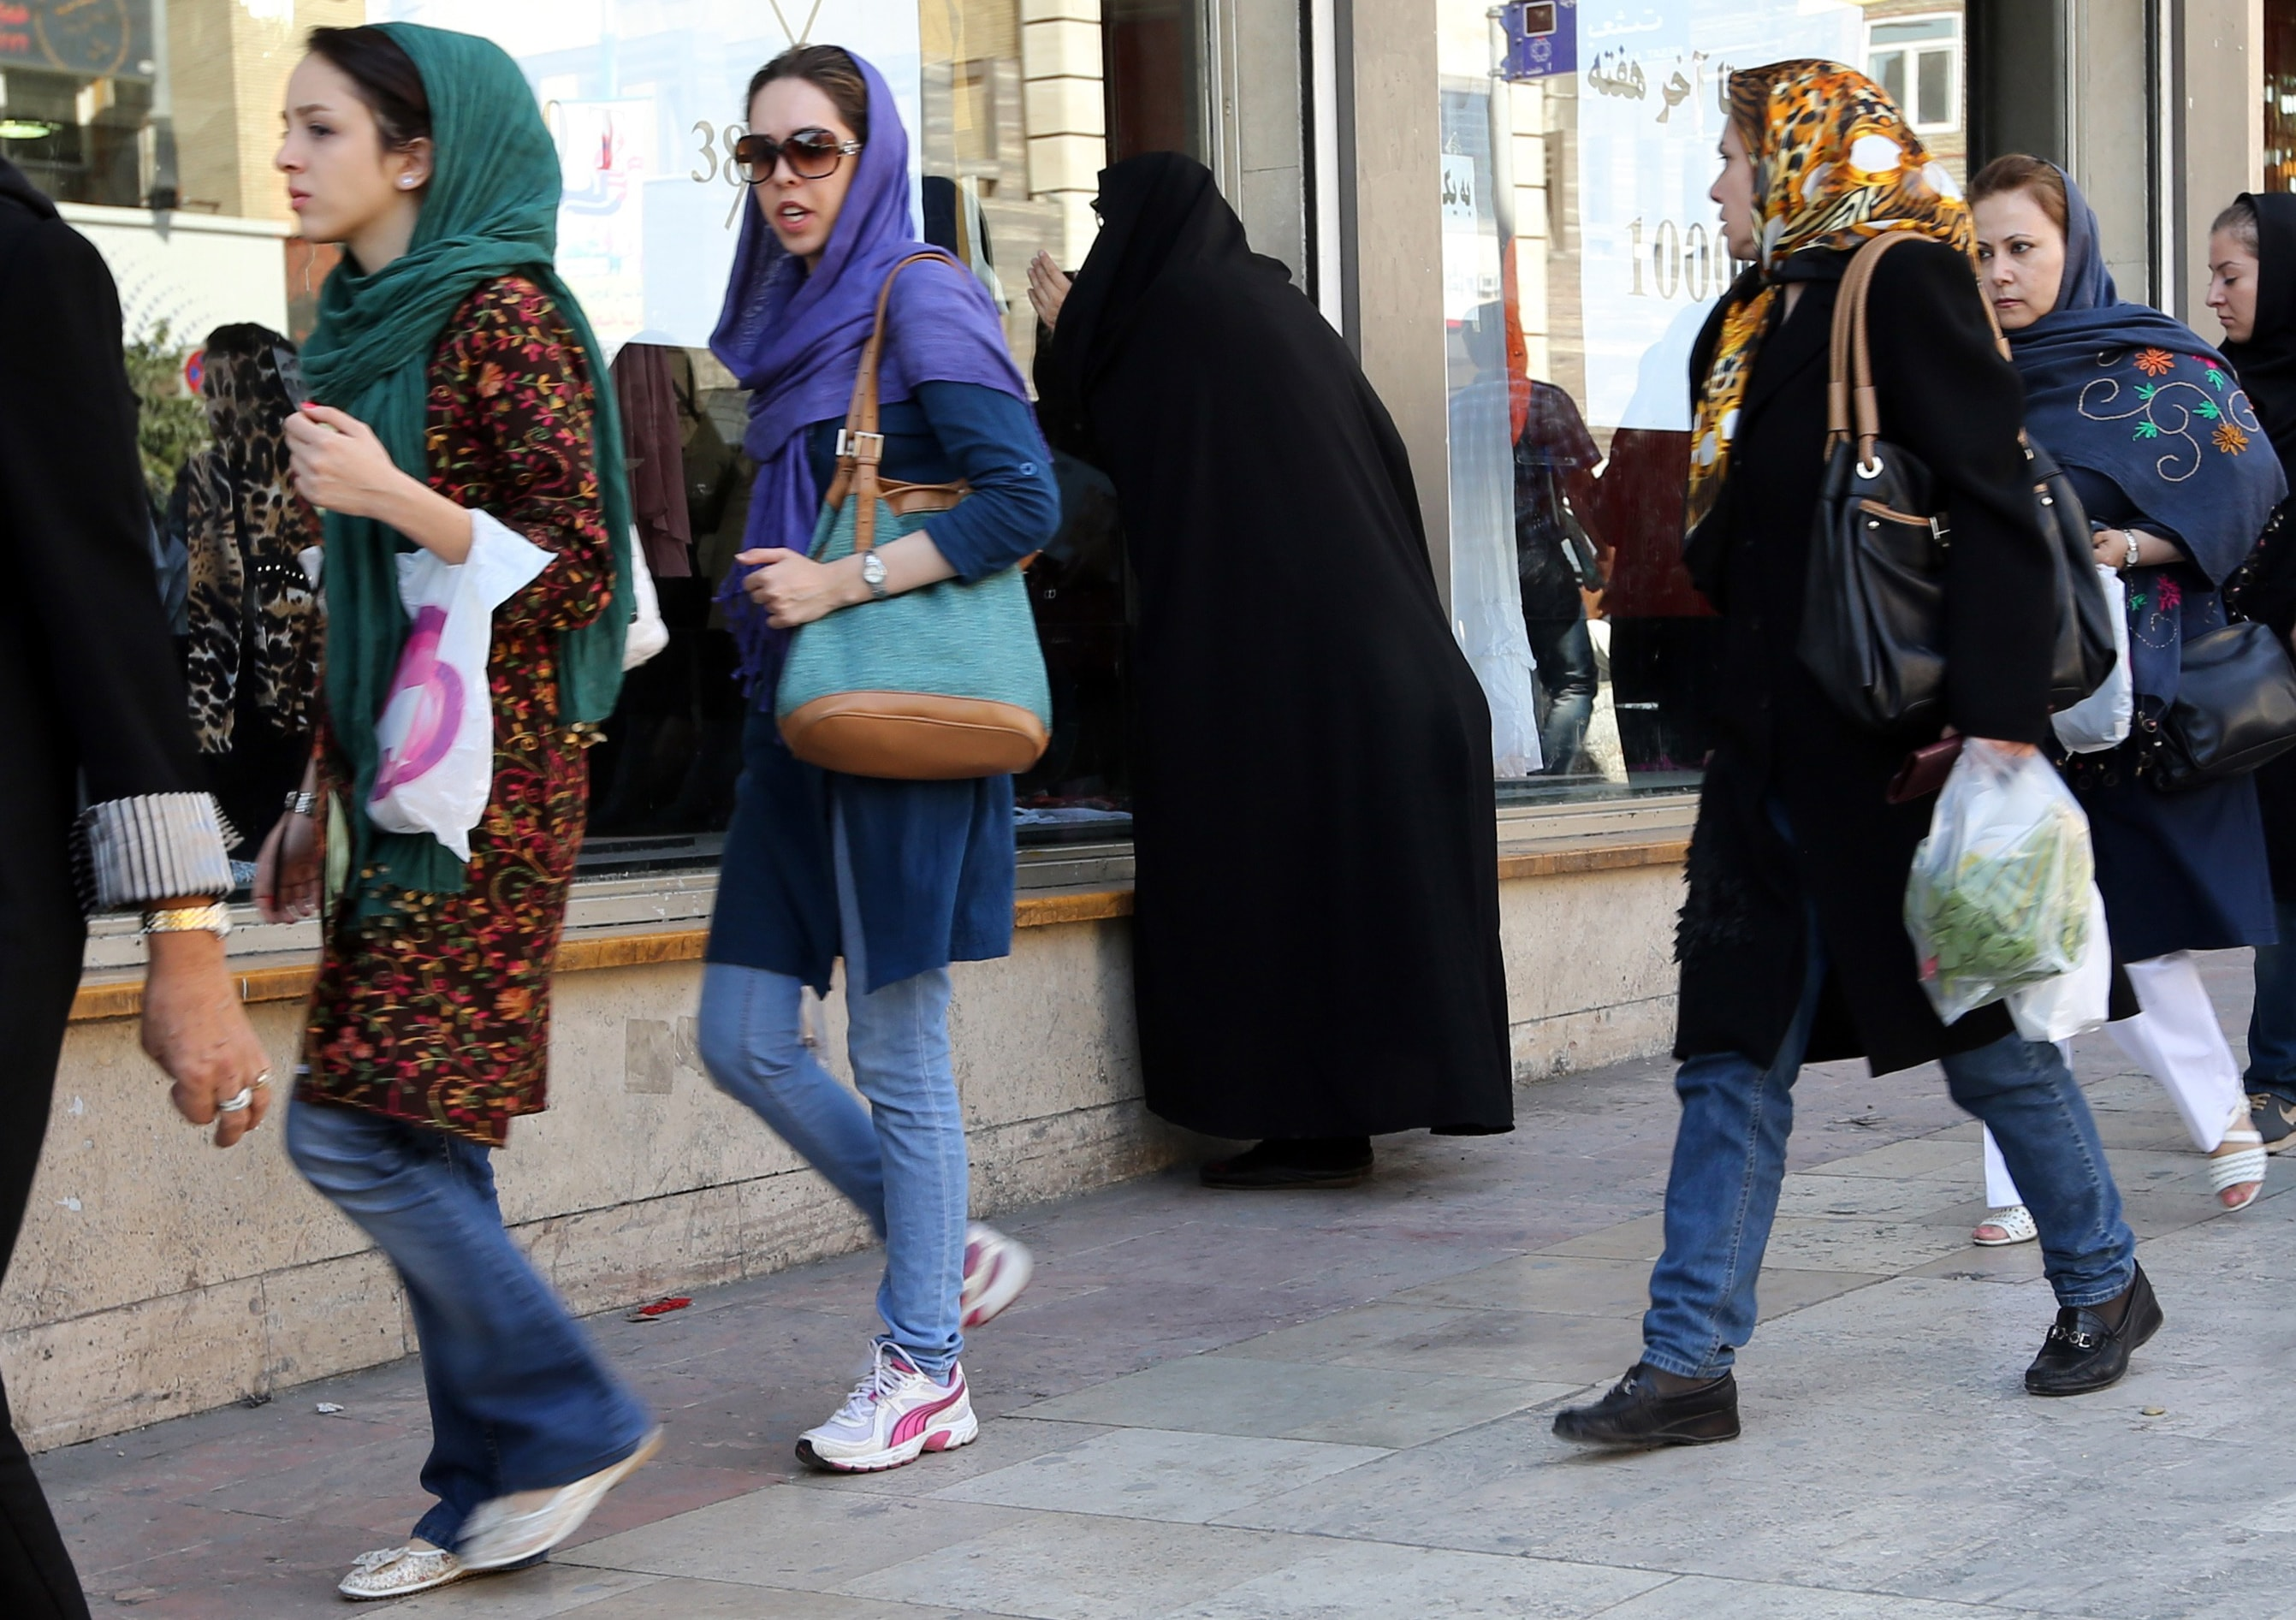 photos of how to dress in iran